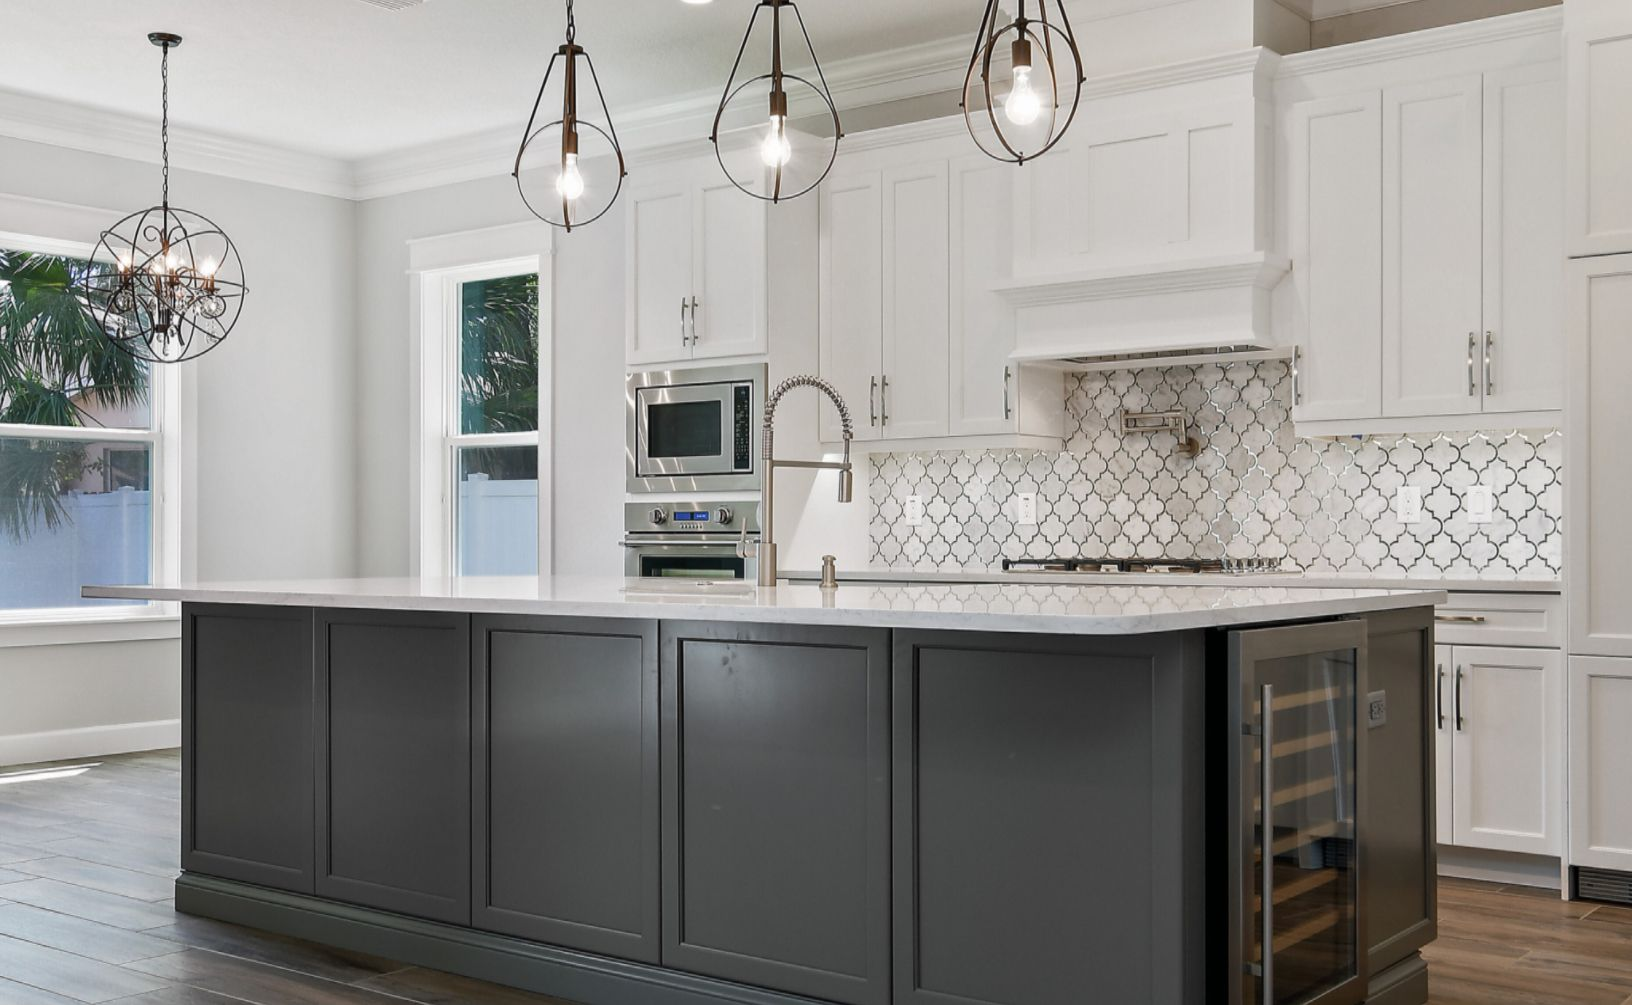 New Legacy Homes offers designer kitchens in all their custom built homes. Wow your guests, with the kitchen of your dreams. #southtampahomes #customhomessouthtampa #kitcheninspiration #coolkitchens #custombuild #kitchendesign